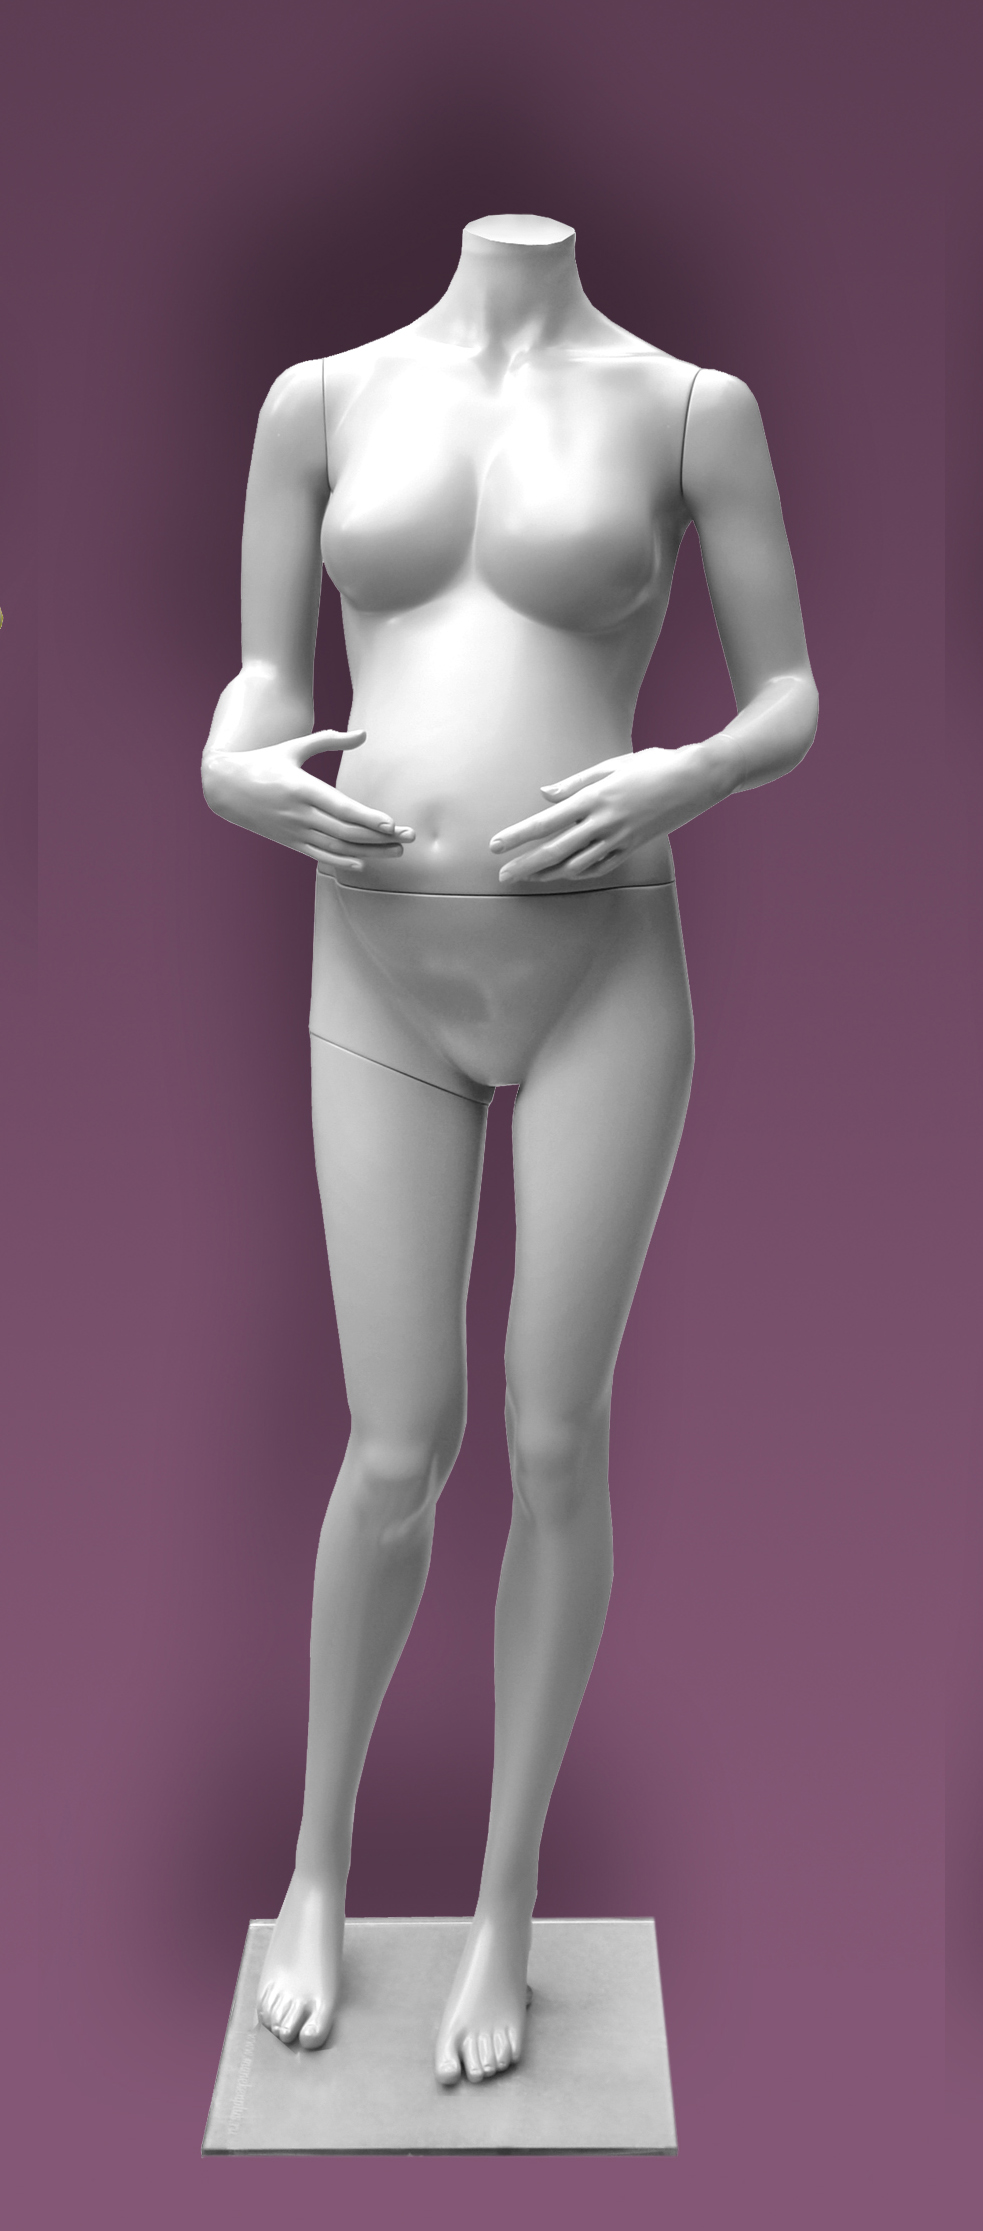 Female mannequins of the Inspiration 43 series